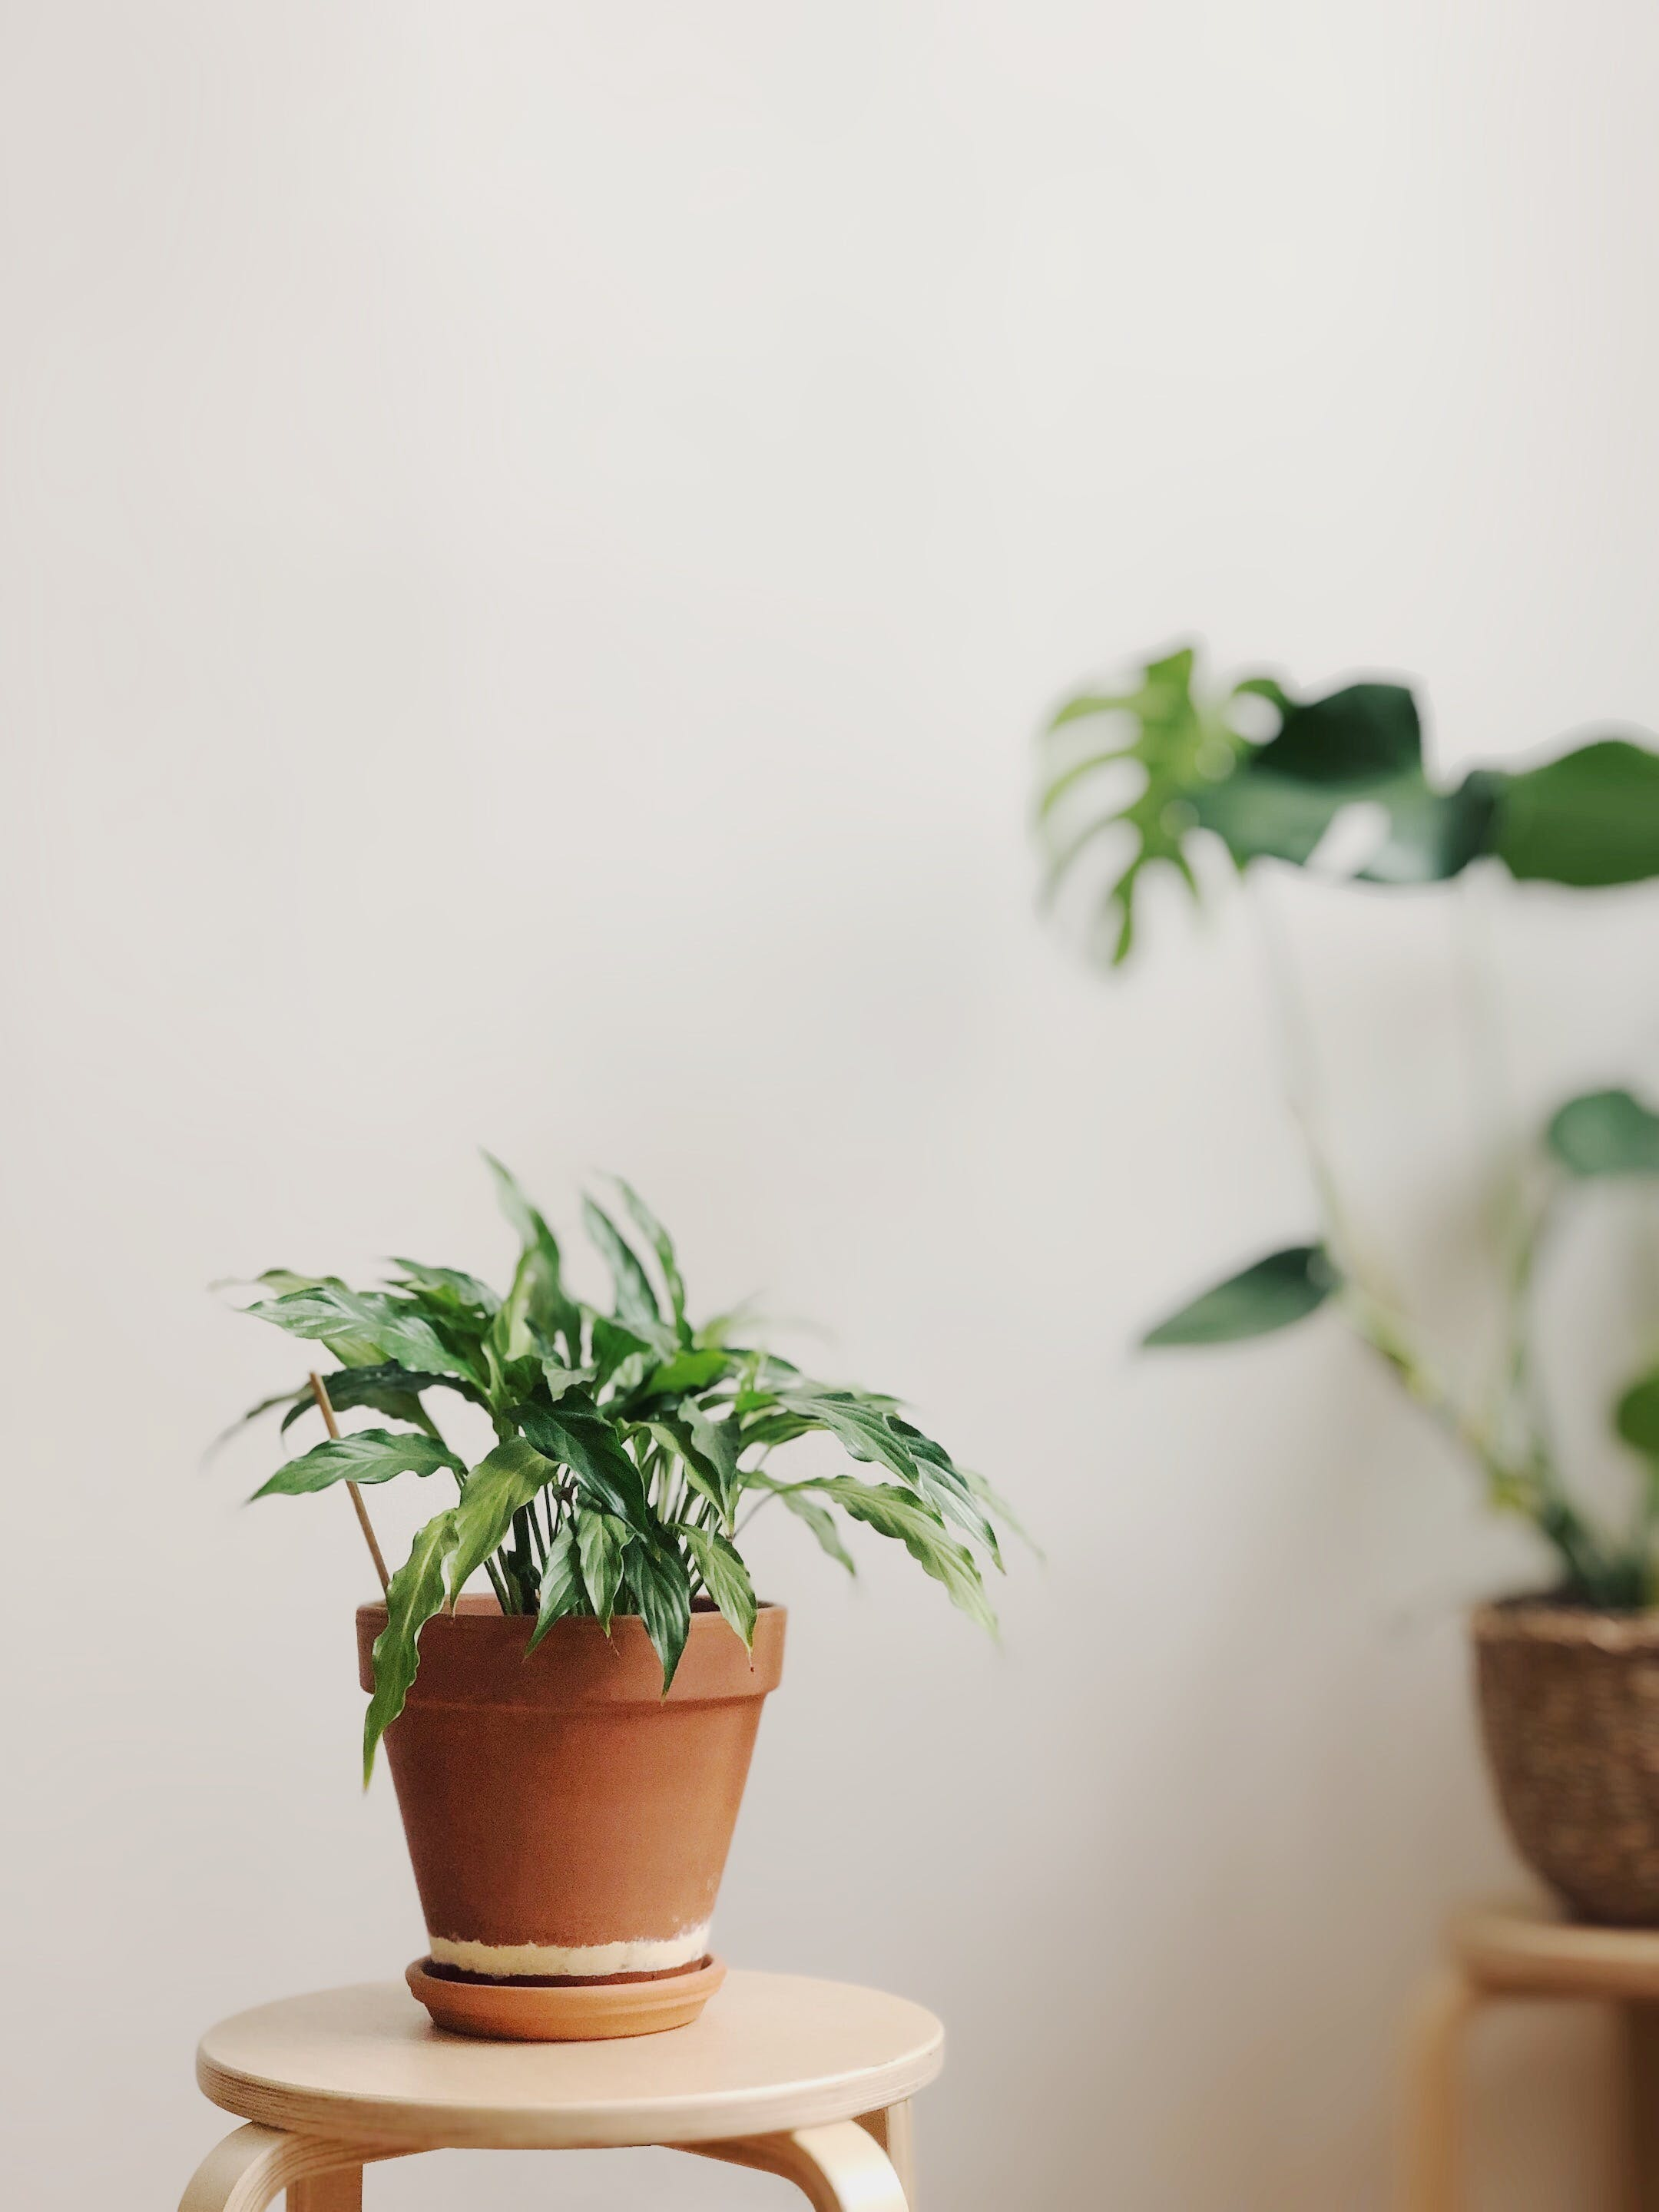 Selective Focus Photography of Potted Plant